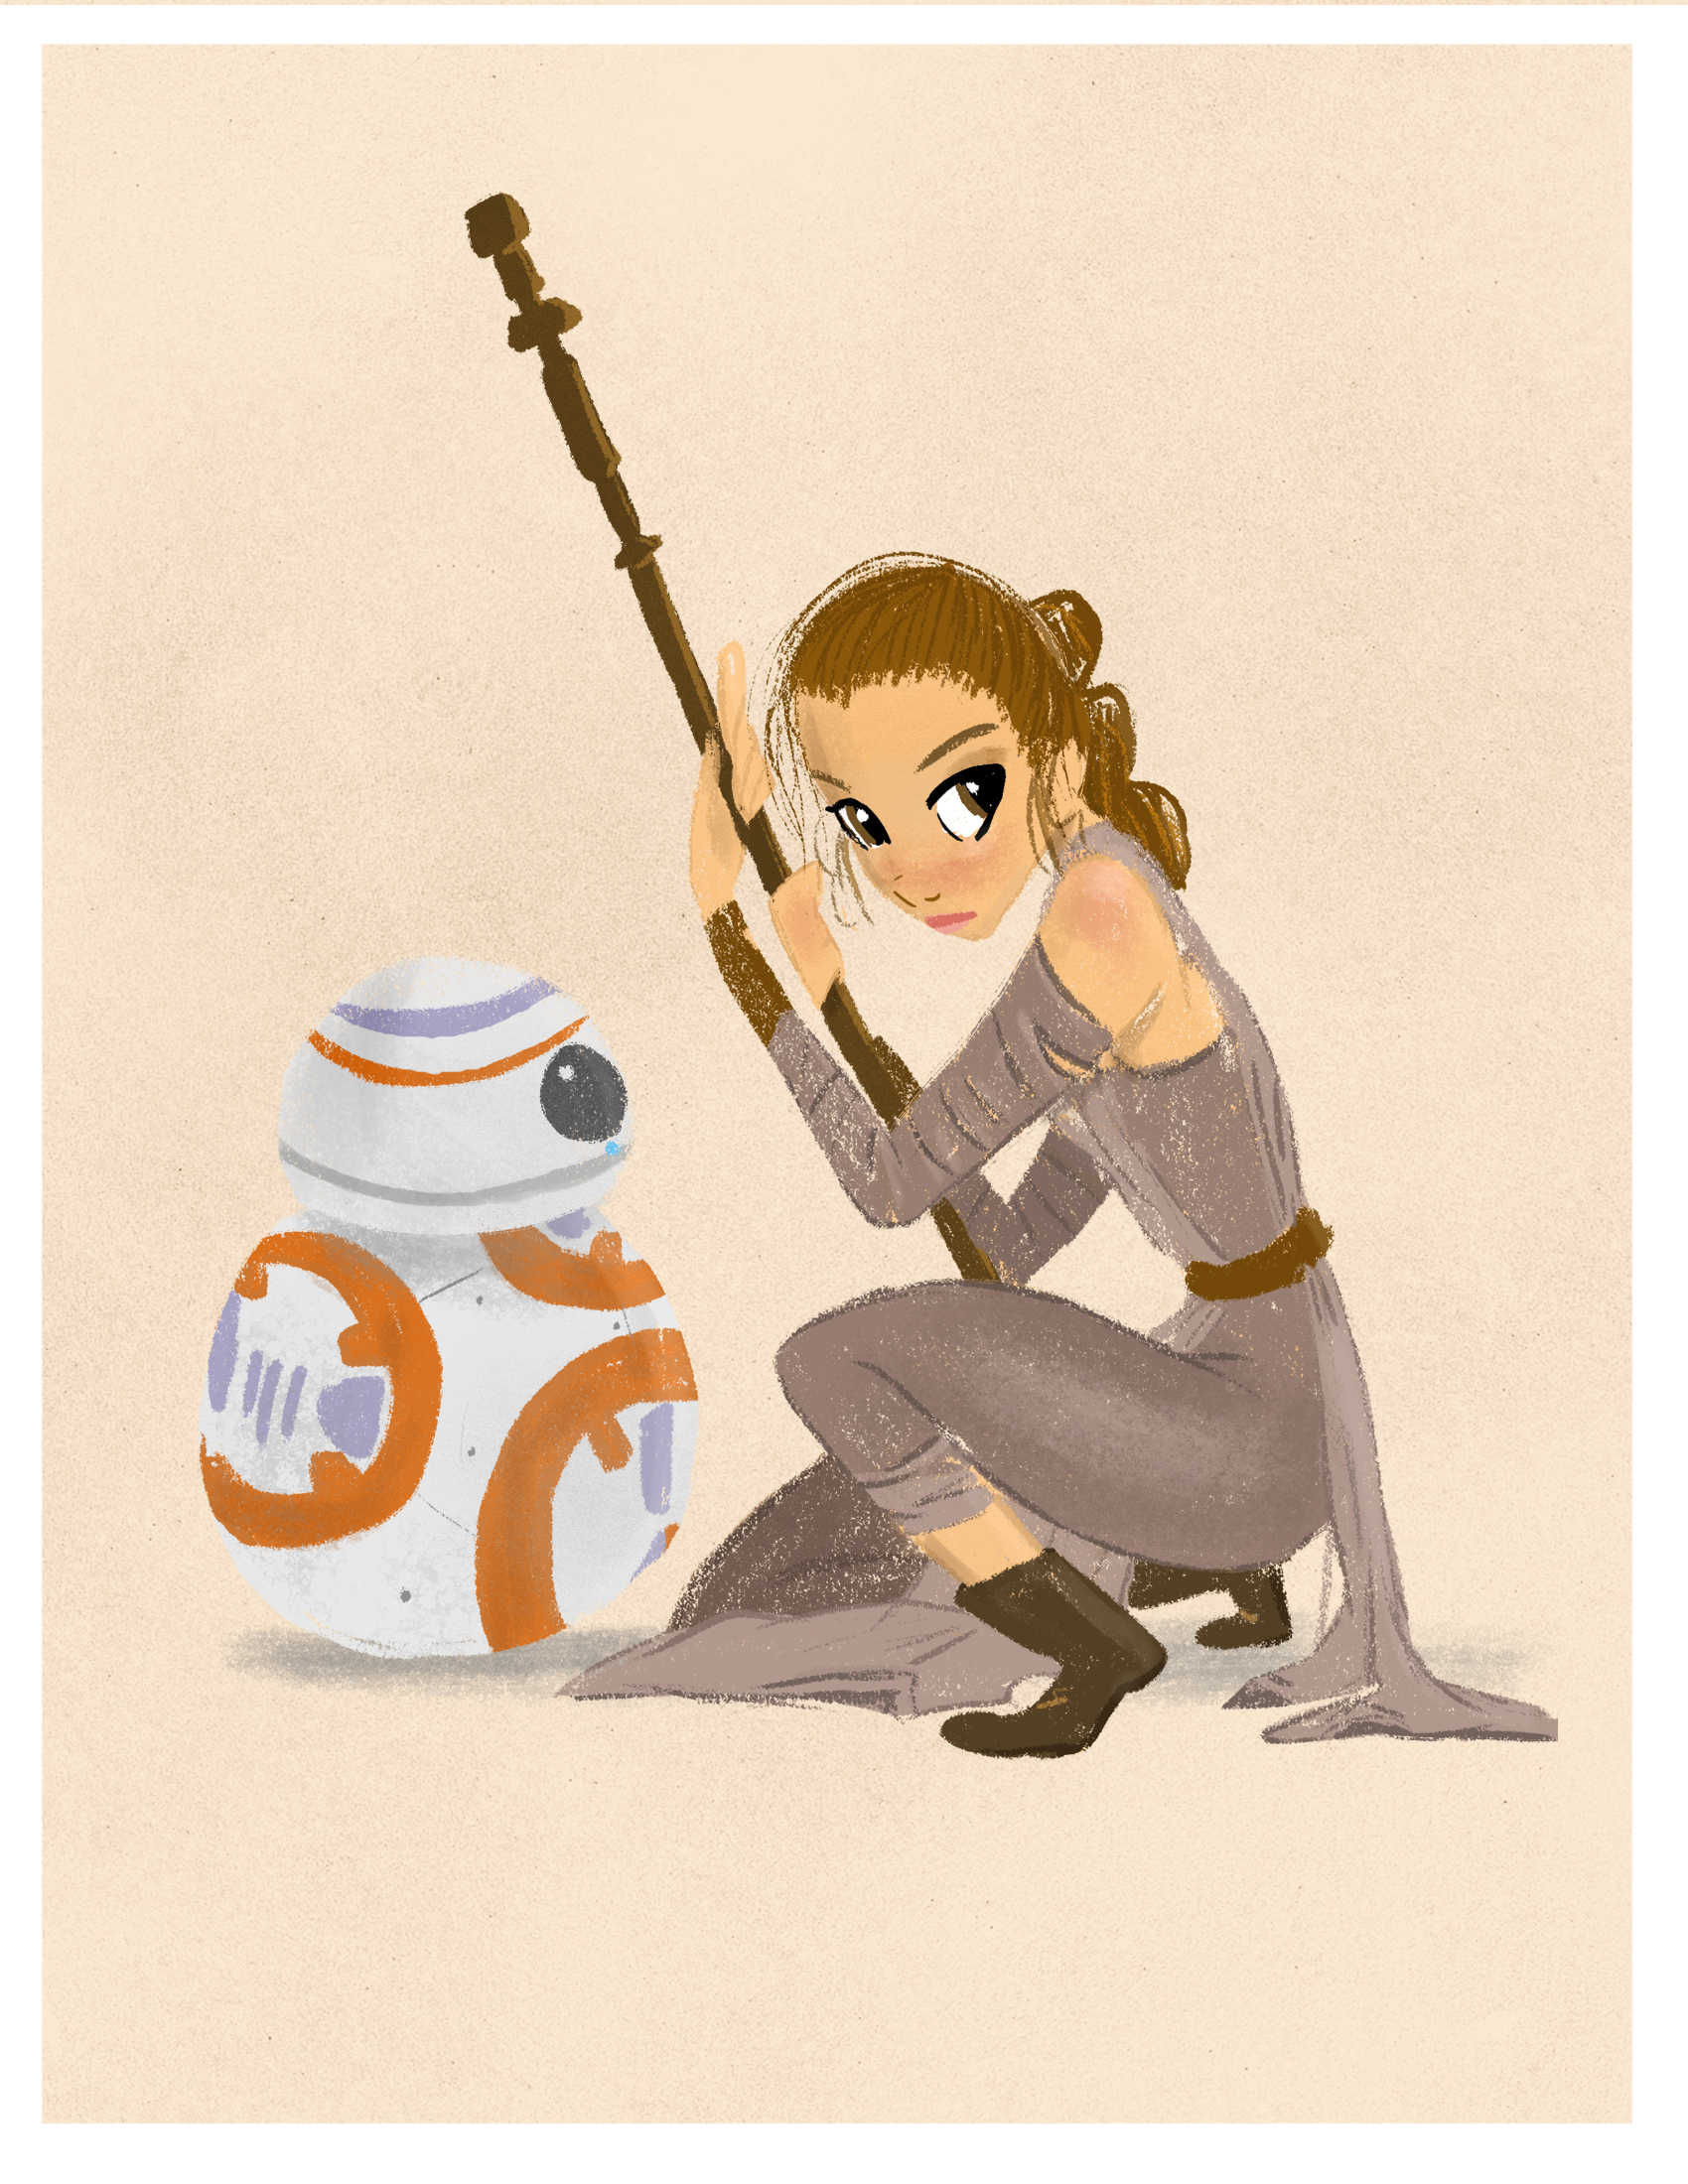 bb8ray8x11